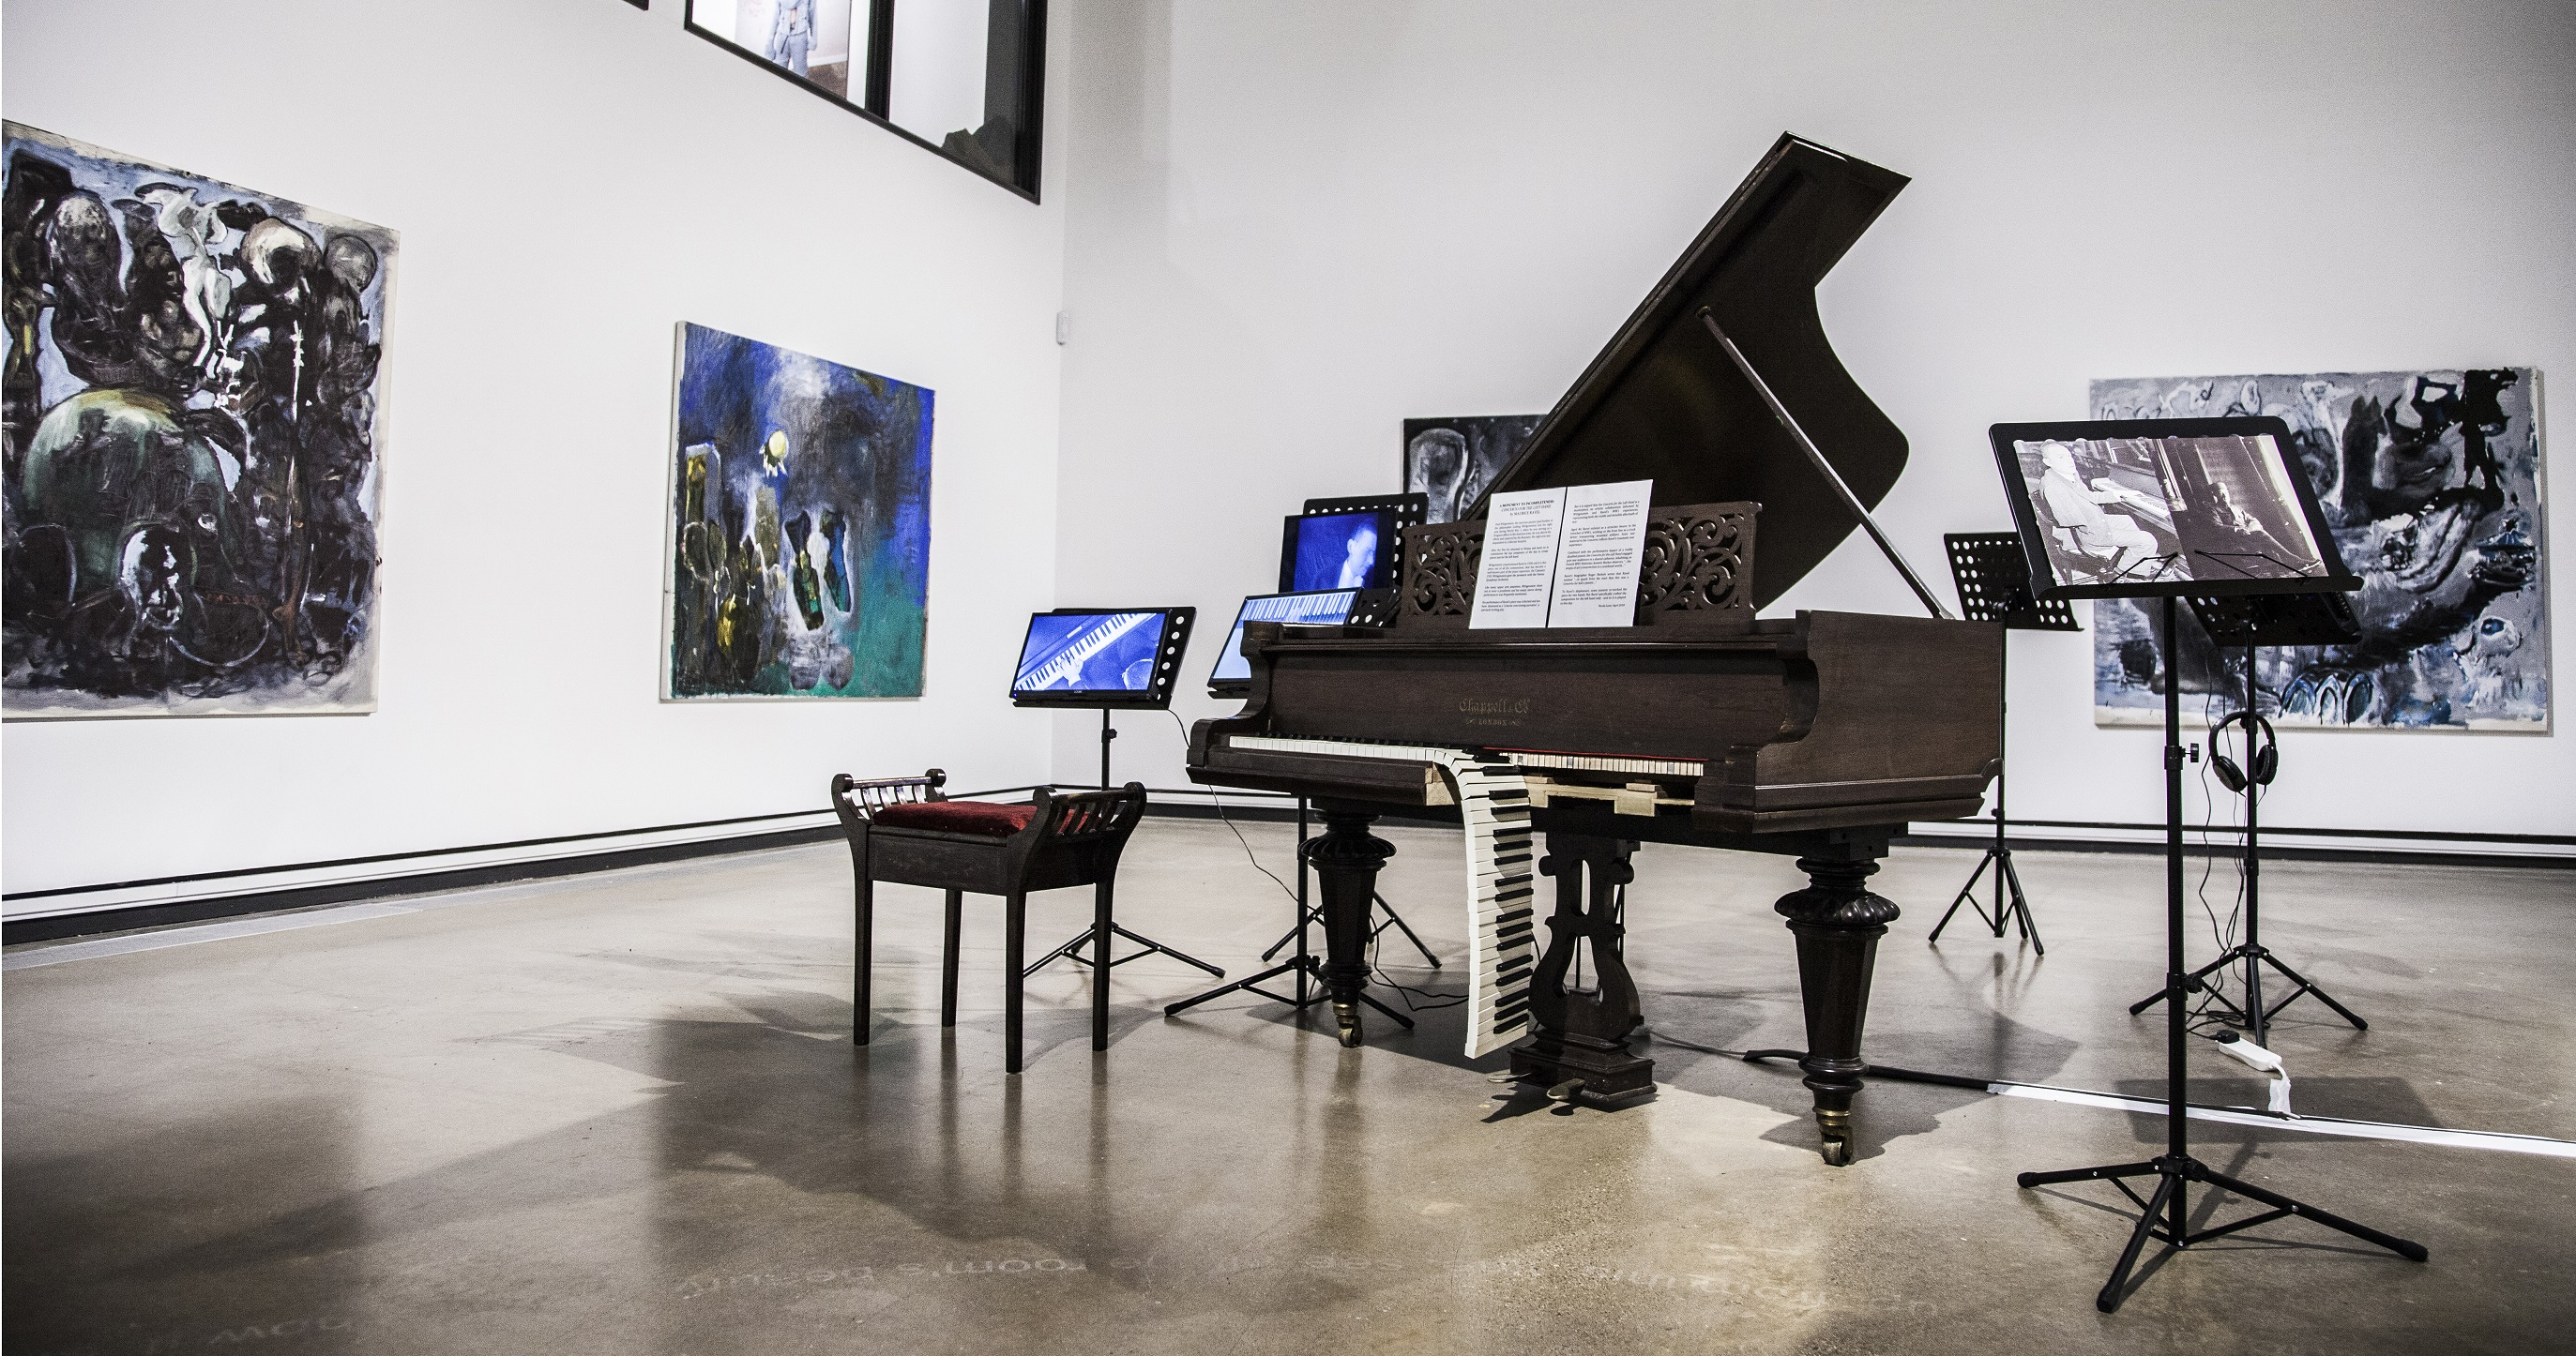 A black grand piano with half of the keys falling off sits in the middle of a very big, modern gallery space. There are screens on music stands around it and large, square abstract paintings on the walls behind it